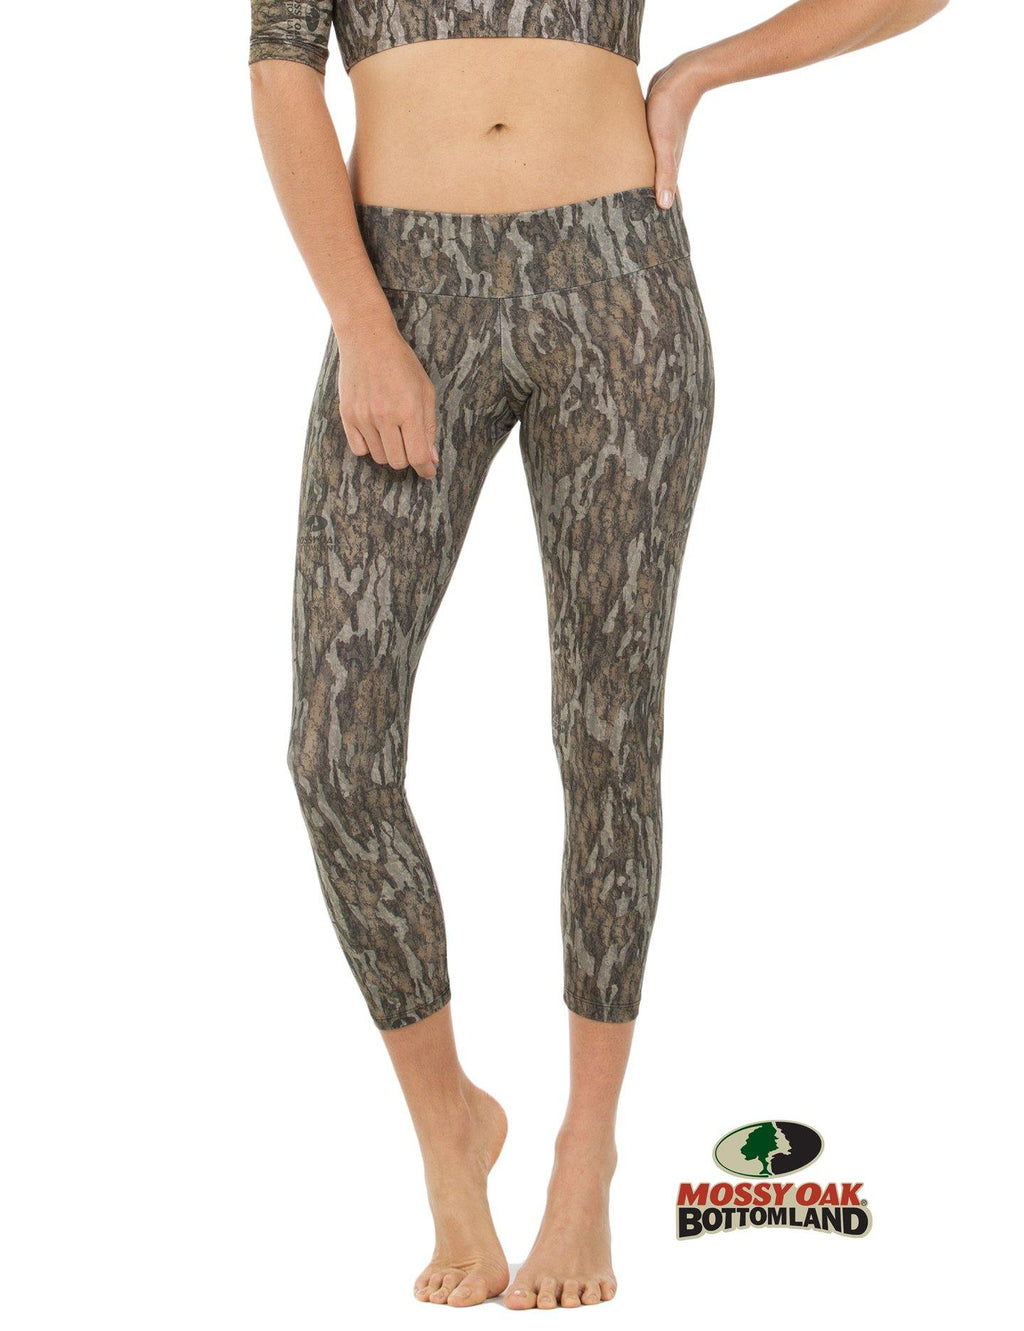 Apsara Leggings Low Waist Cropped, Mossy Oak Bottomland